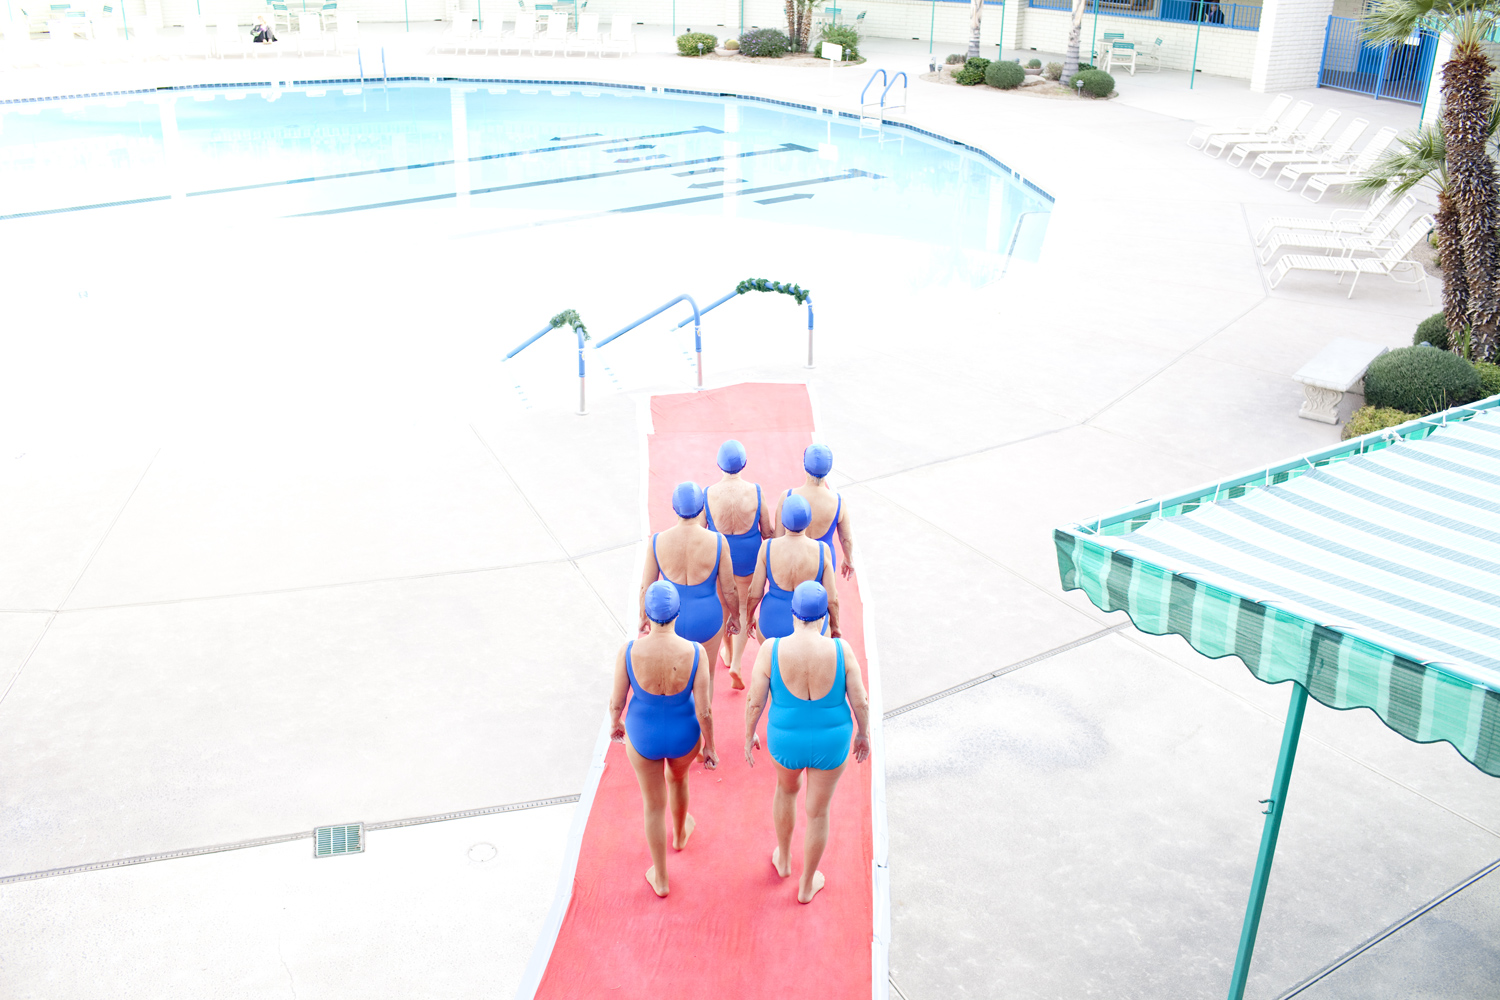 Synchronized swimmers begin a performance at the pool in Sun City, Arizona.